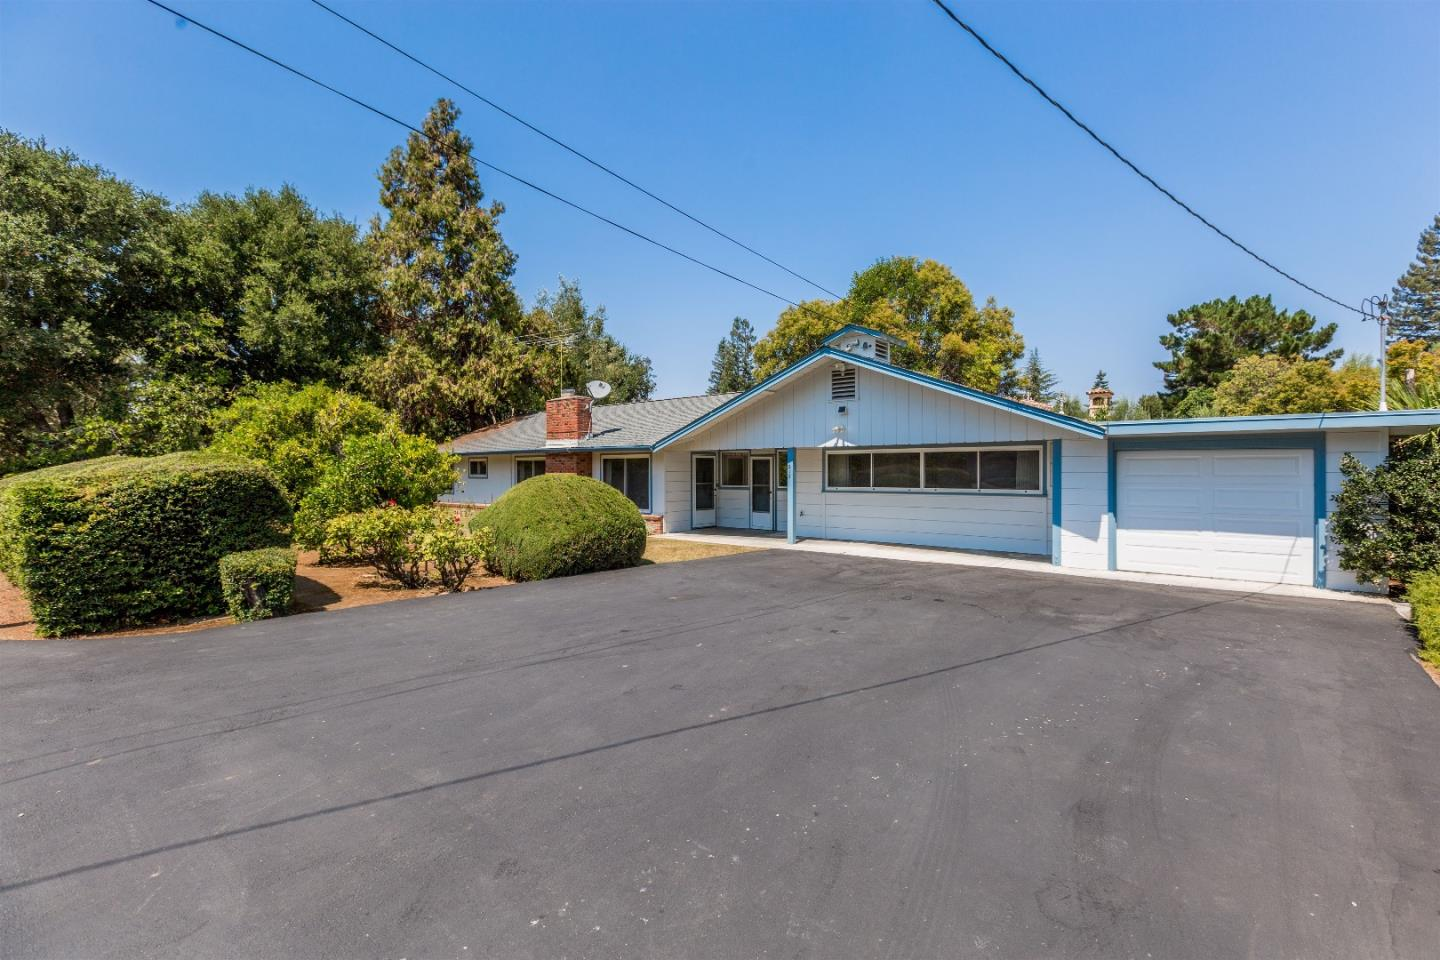 Single Family Home for Sale at 215 Lyell Street Los Altos, California 94022 United States